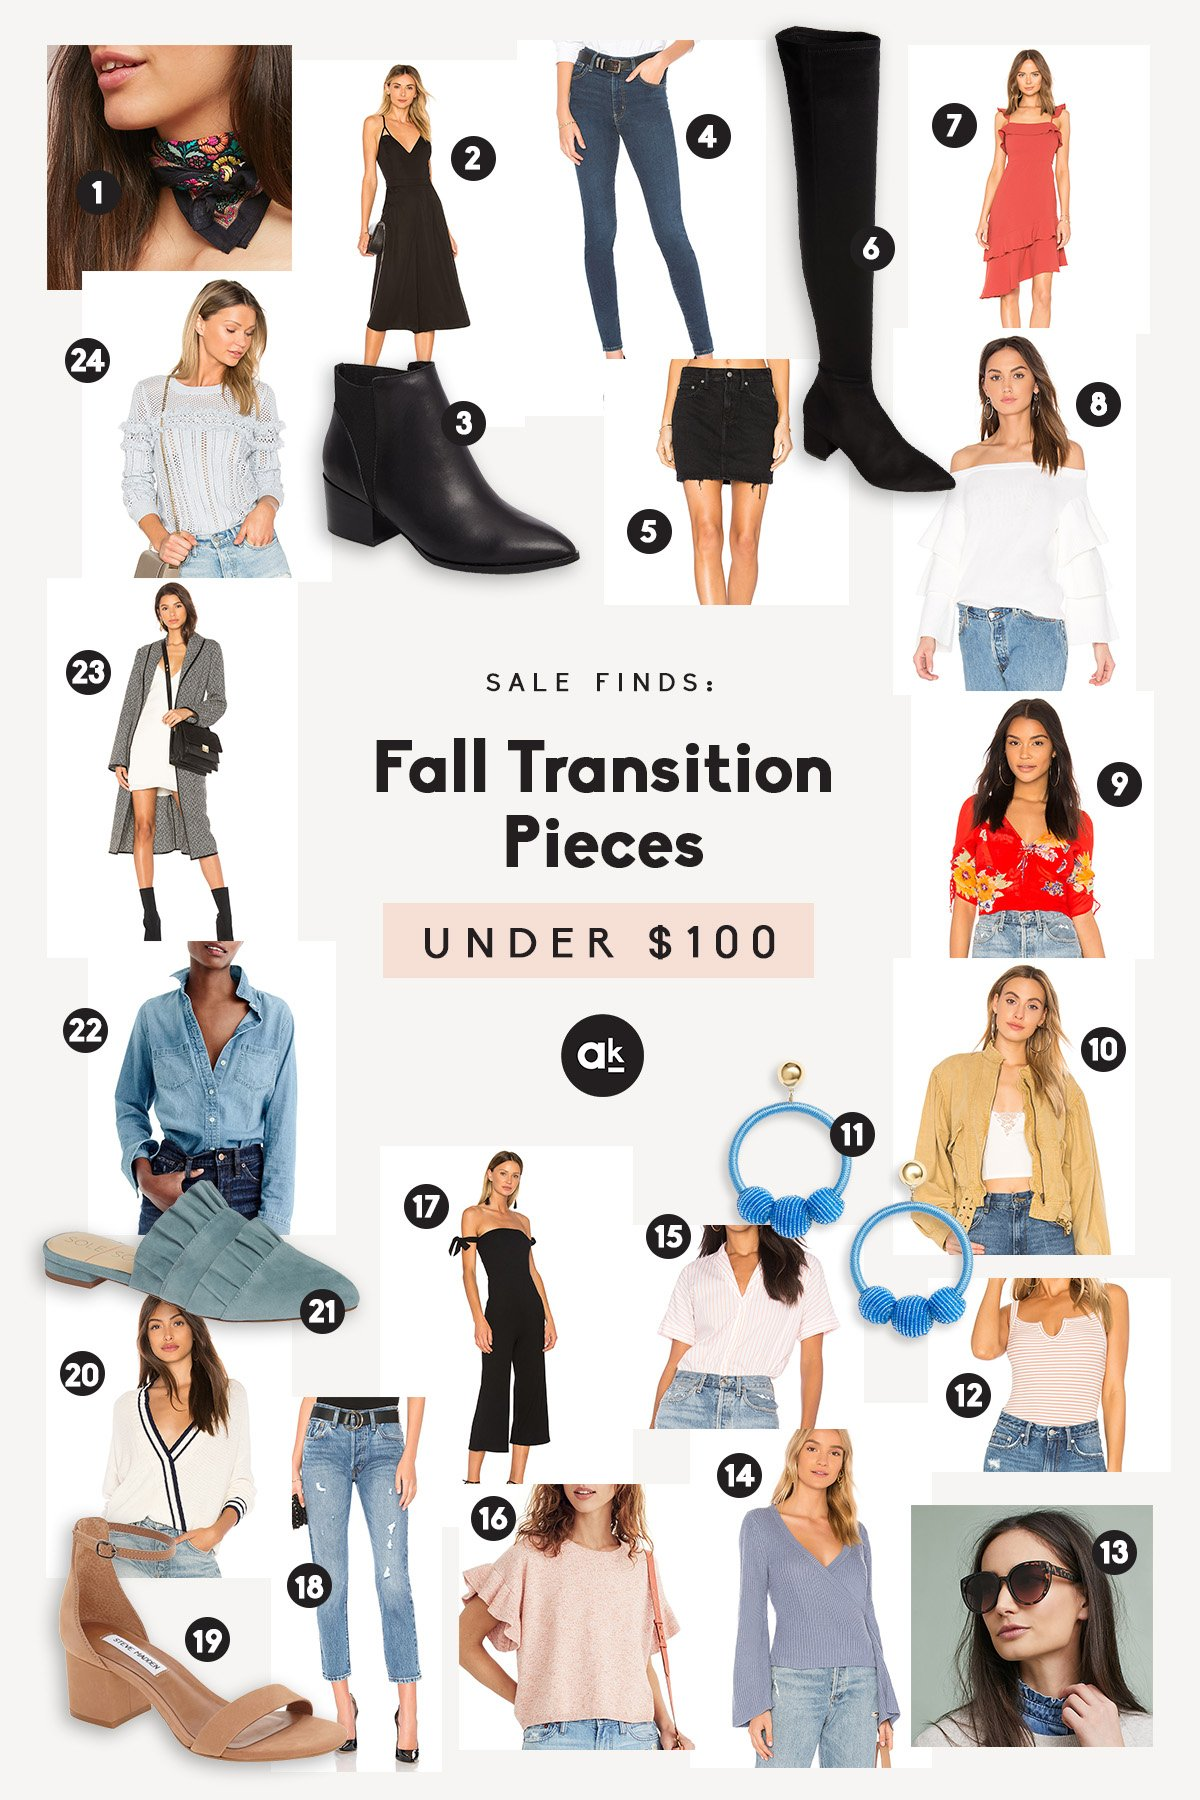 My favorite fashion picks for transitioning from summer to fall! Mix and match these jeans, light sweaters, dresses and go-to shoes for the perfect outfits any day of the week. All under $100!